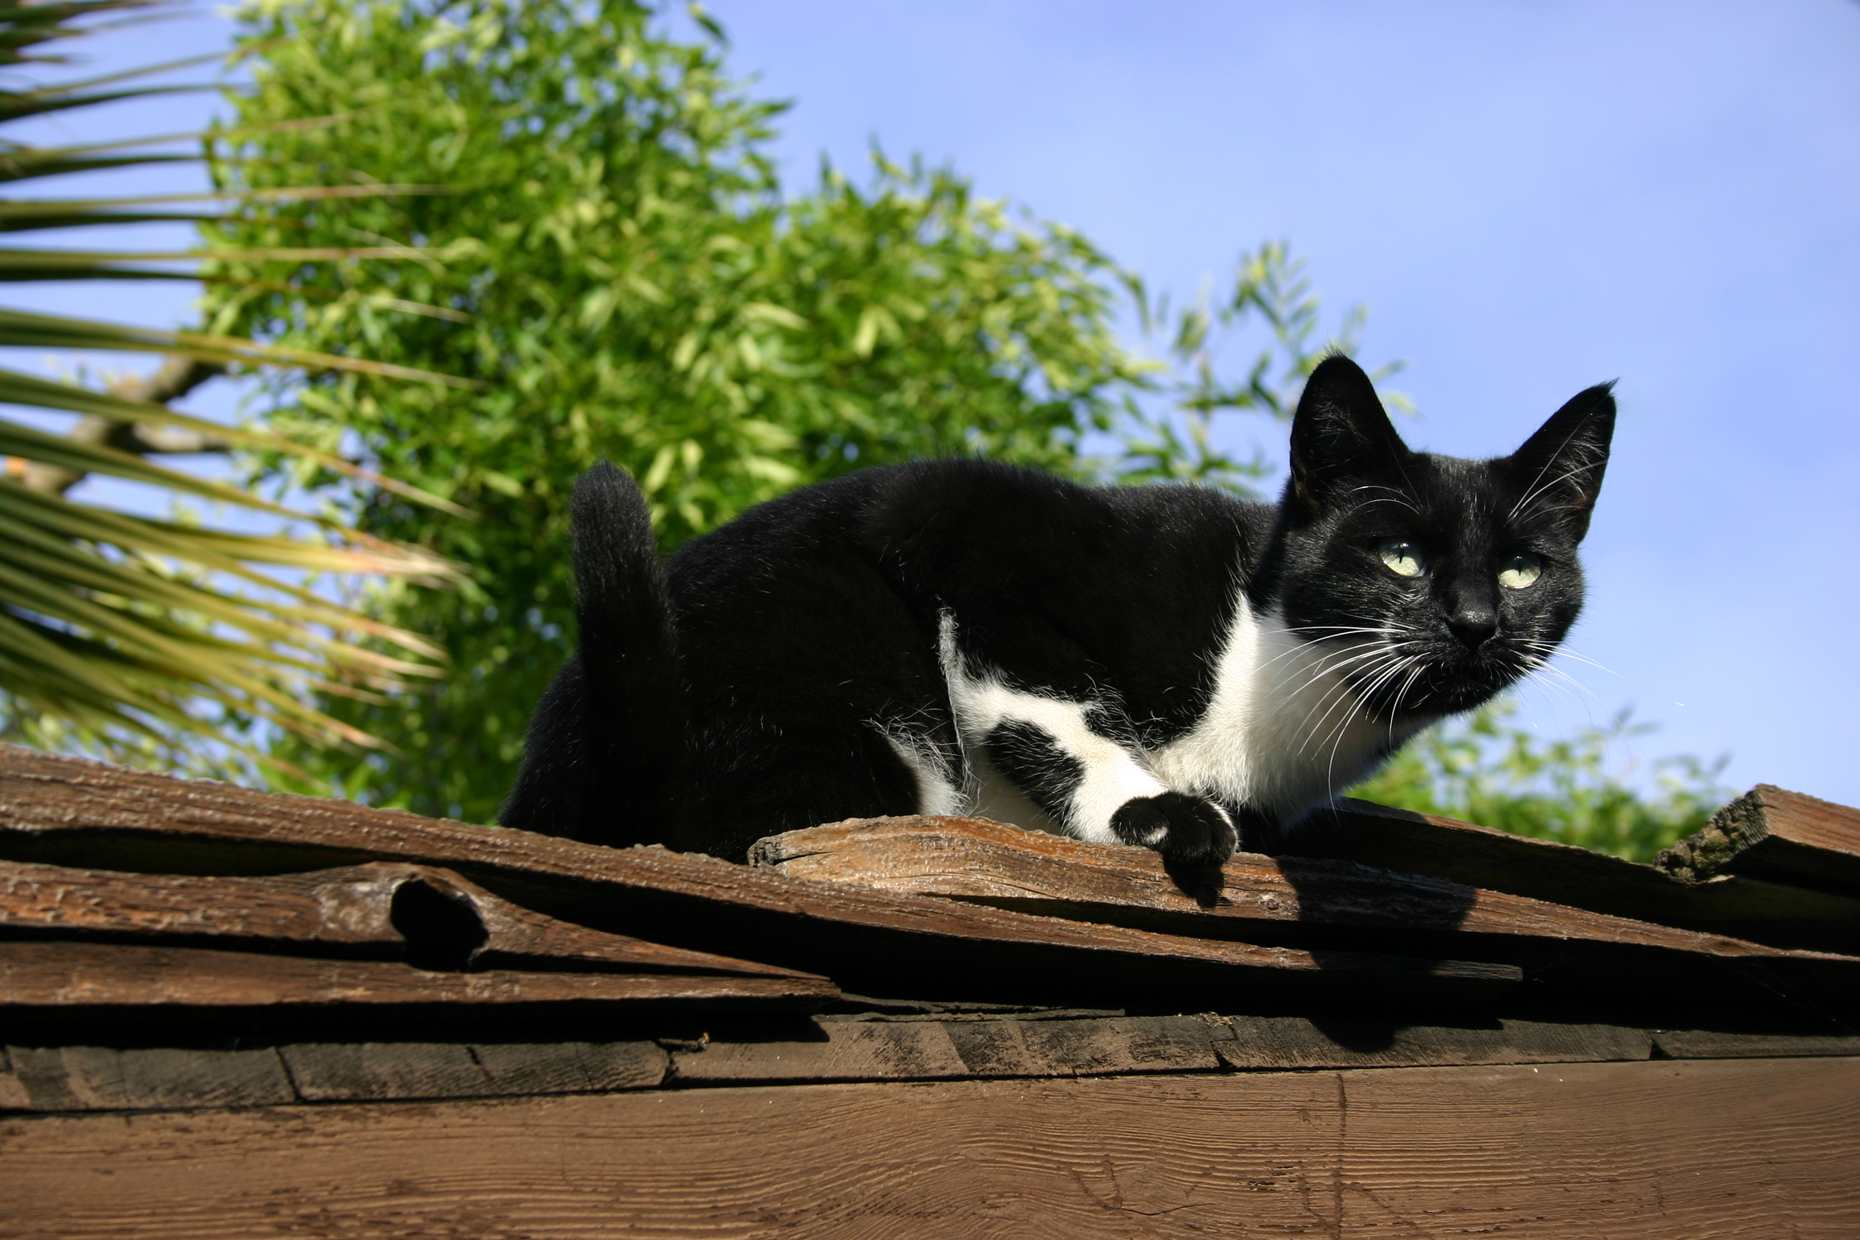 A black and white cat suns herself on a roof.